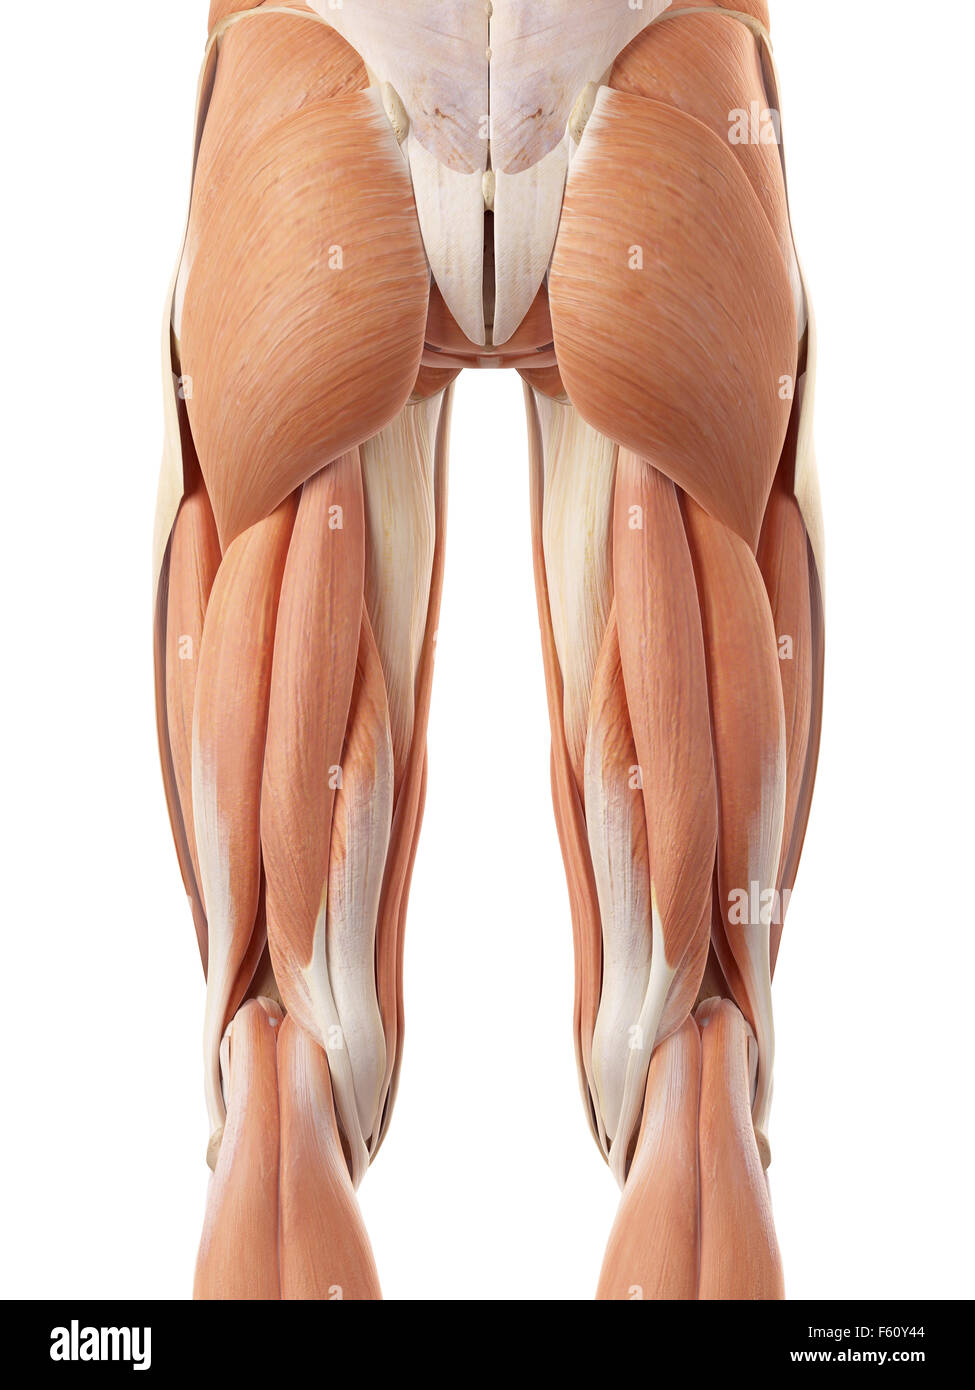 Human Upper Leg Muscles Stock Photos Human Upper Leg Muscles Stock